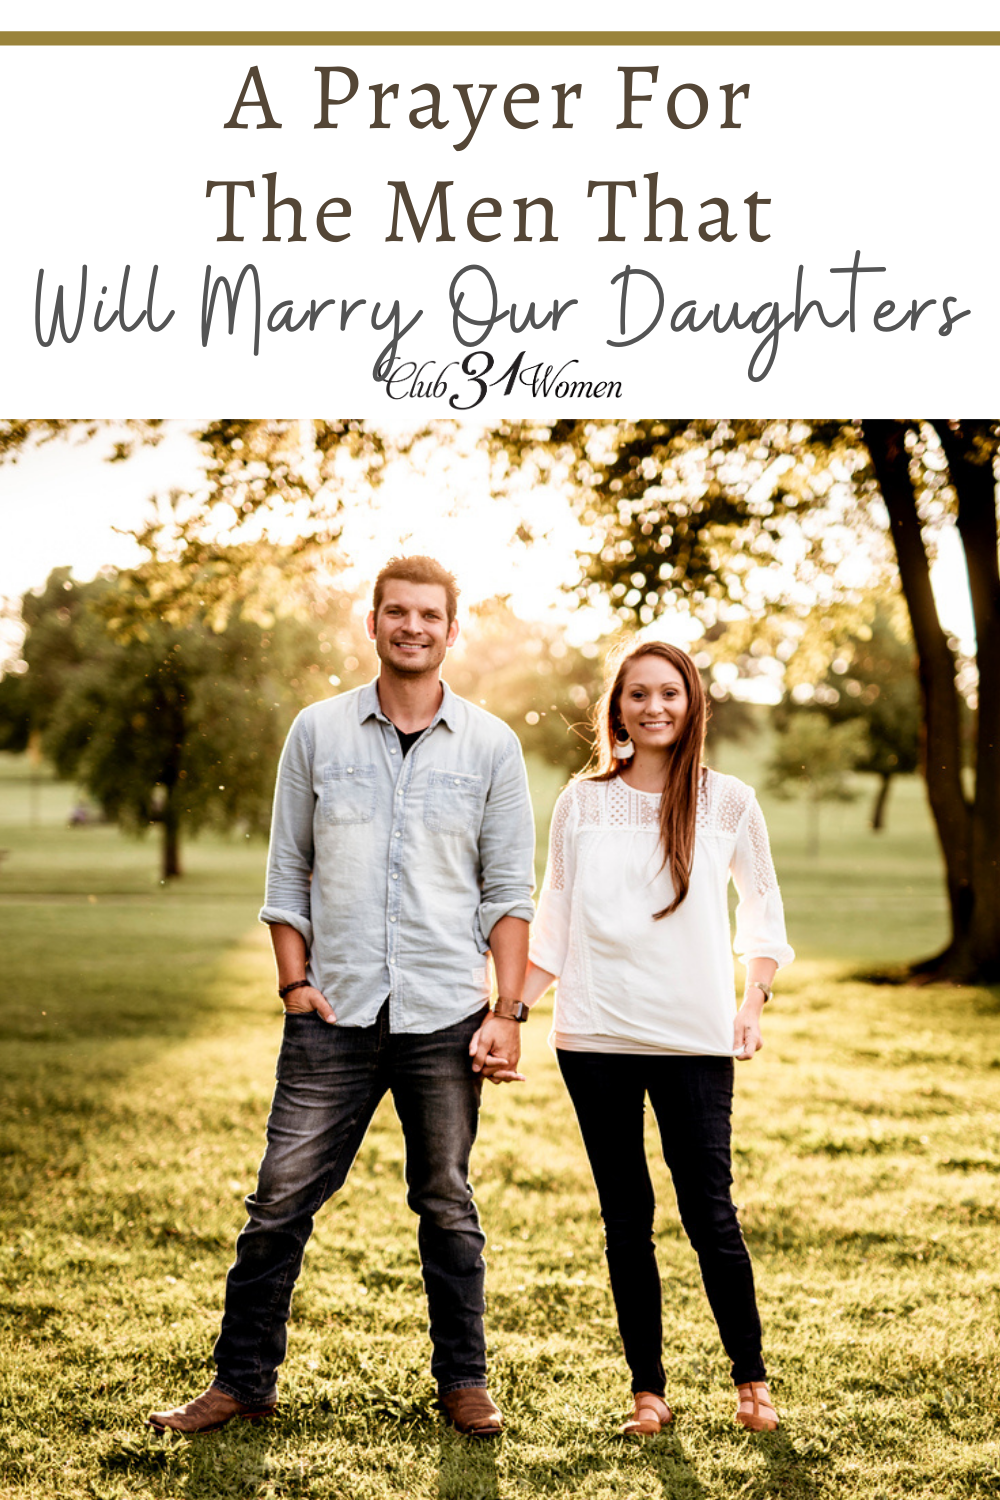 My prayer for this young man who will one day marry my daughter. As tears roll down my cheeks, I cry out to you to bless, protect and direct his life. via @Club31Women